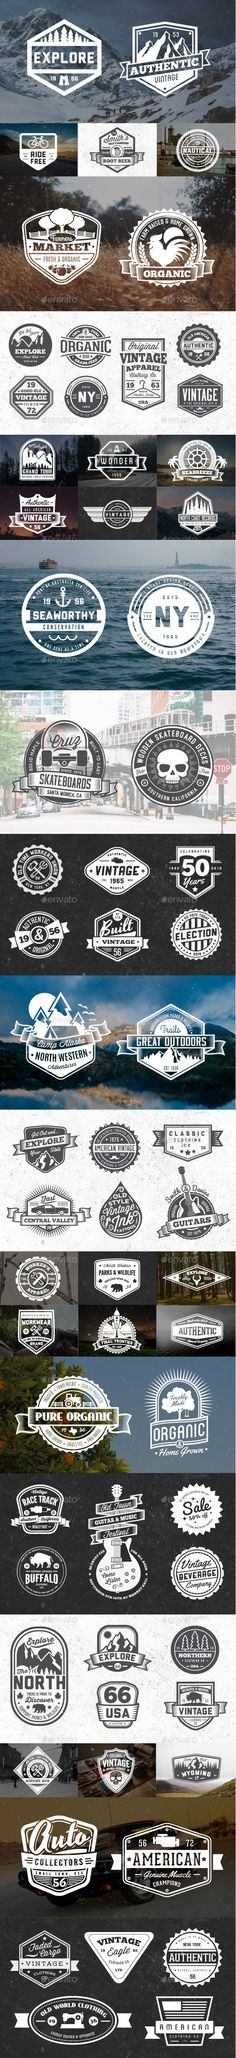 65 Vintage Badges and Logos Bundle #design Download: http://graphicriver.net/item/65-vintage-badges-and-logos-bundle/11118584?ref=ksioks